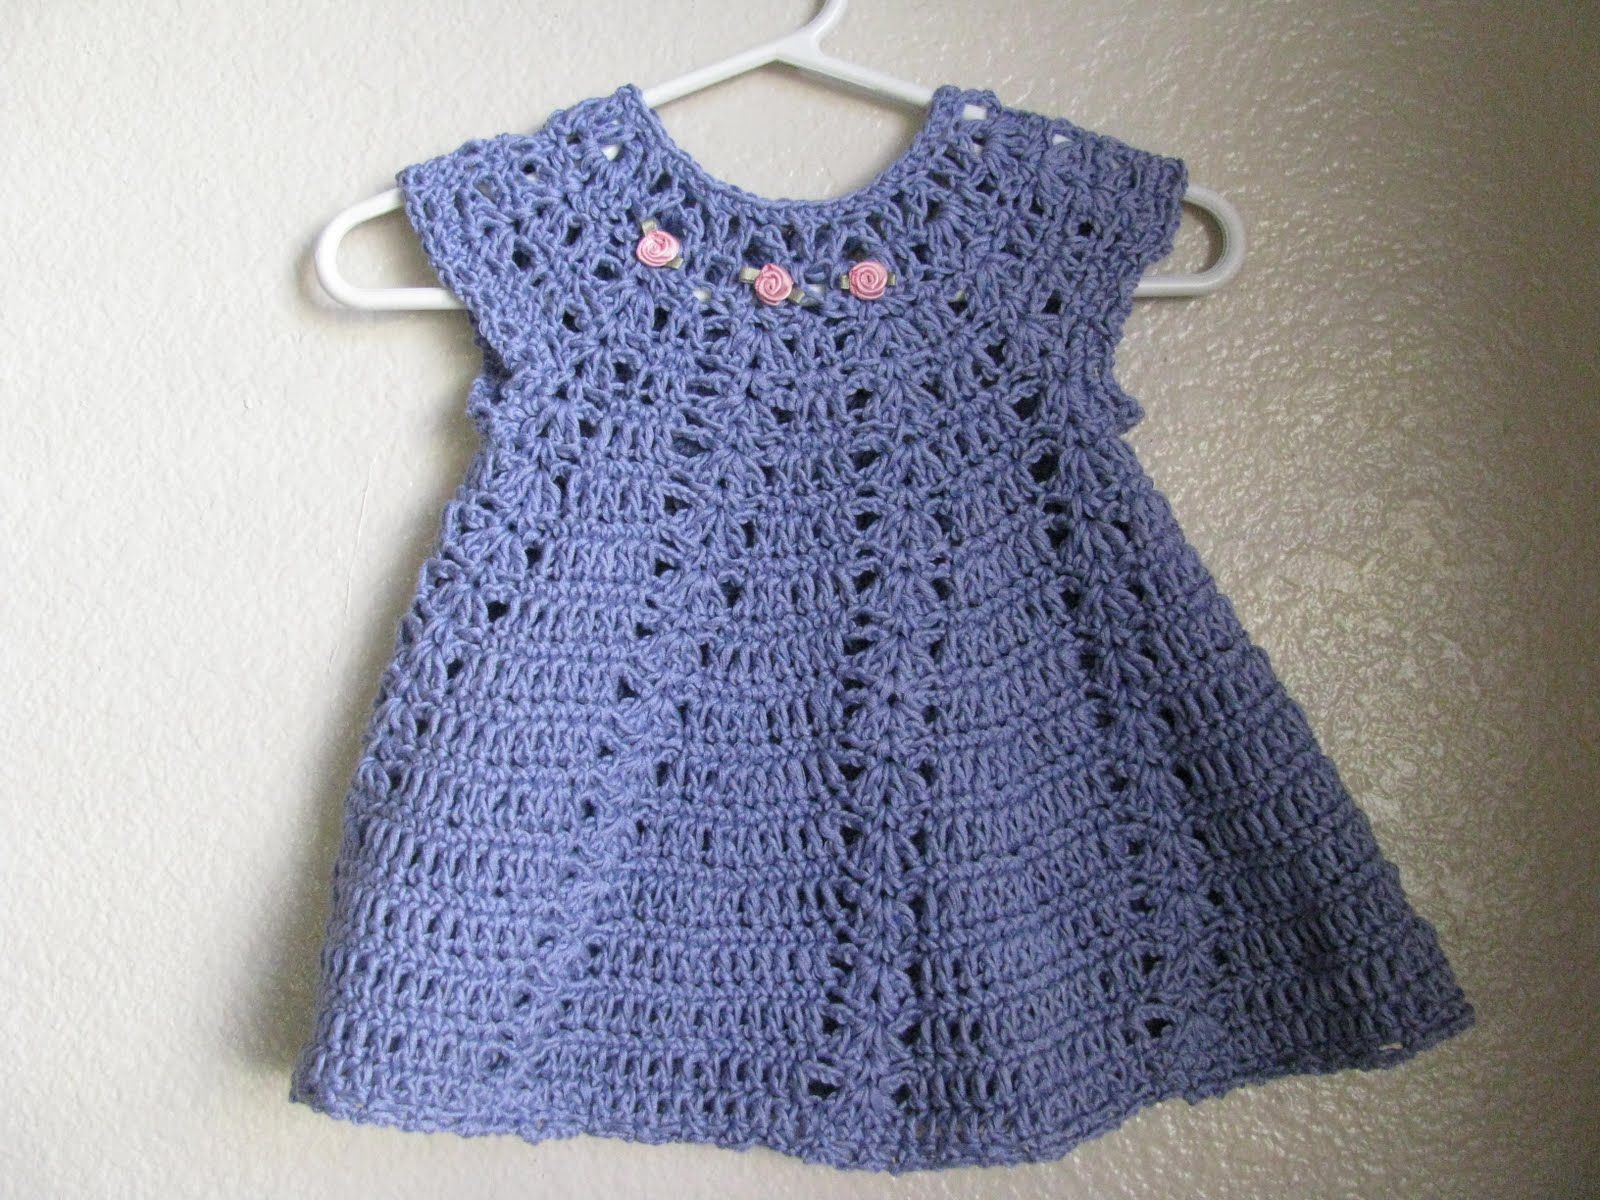 Easy crochet baby dress my latest project my first crocheted easy crochet baby dress my latest project my first crocheted baby dress finished bankloansurffo Image collections